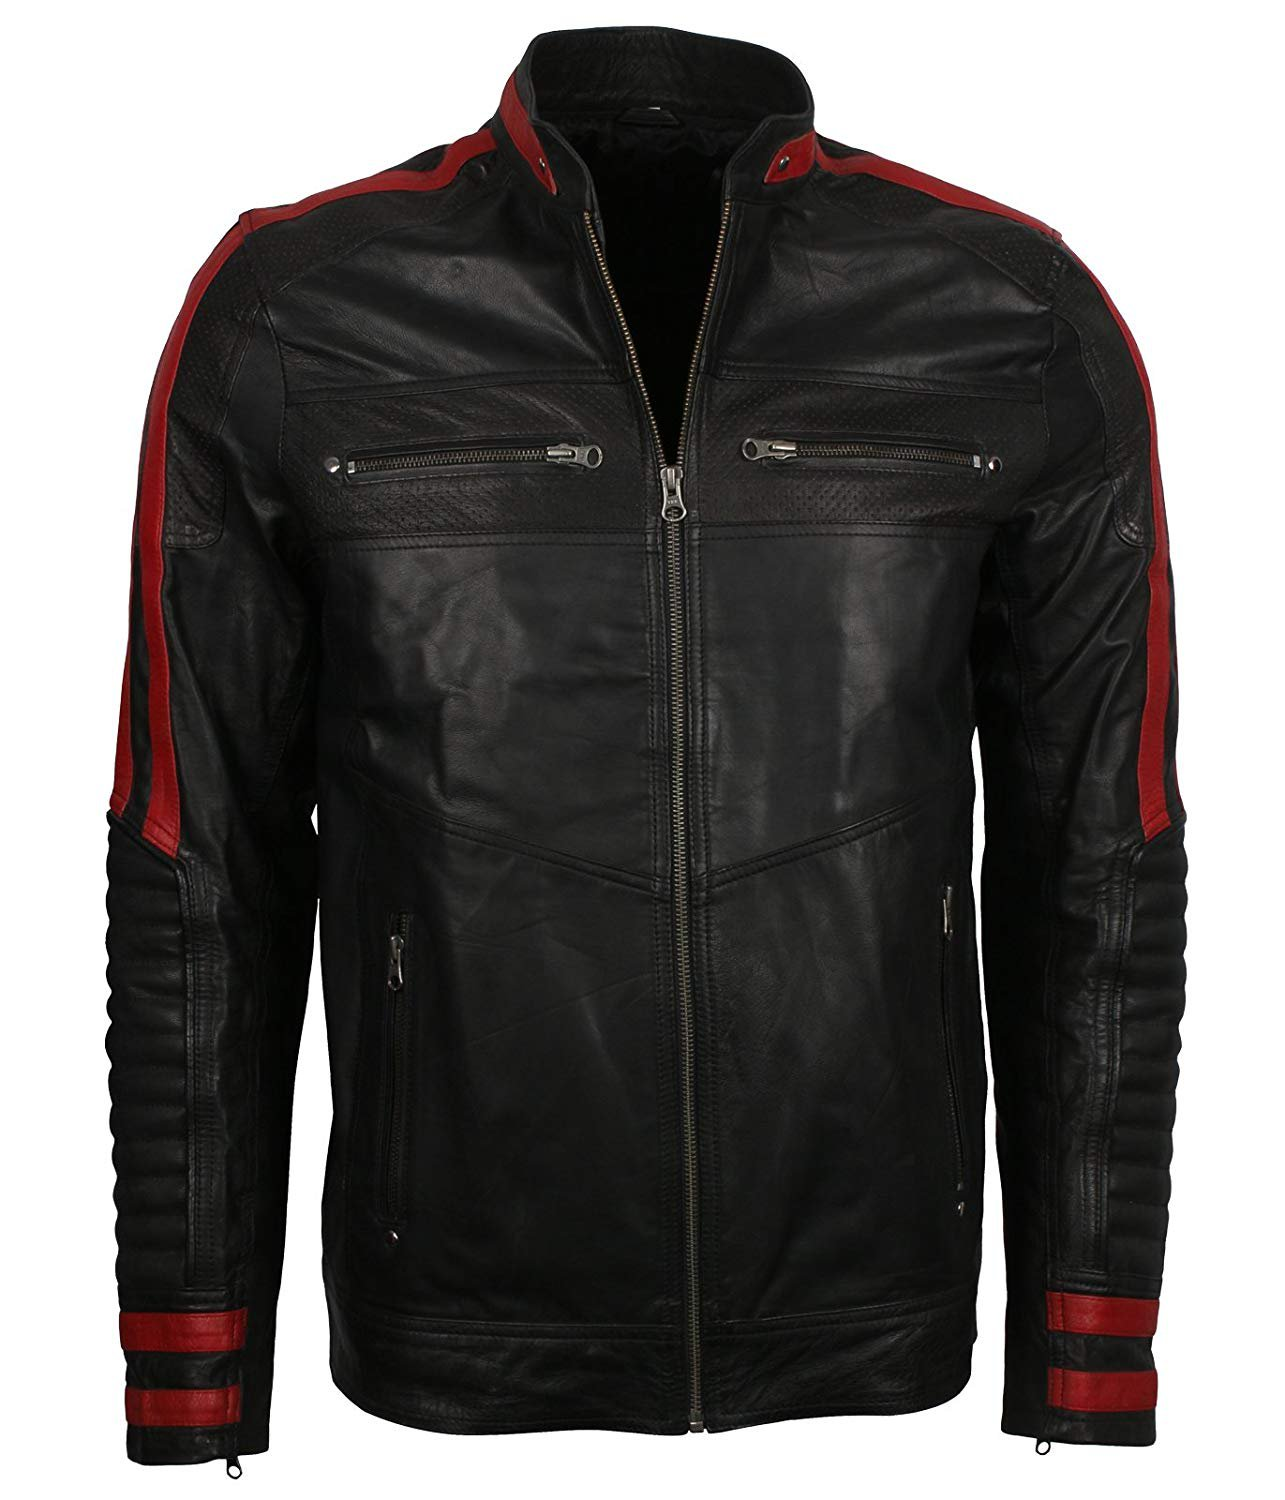 NEW MEN,S FASHION STYLISH LOOKING BLACK WITH RED CONTRAST LEATHER MOTORCYCLE BLACK JACKET SIZE 4XL